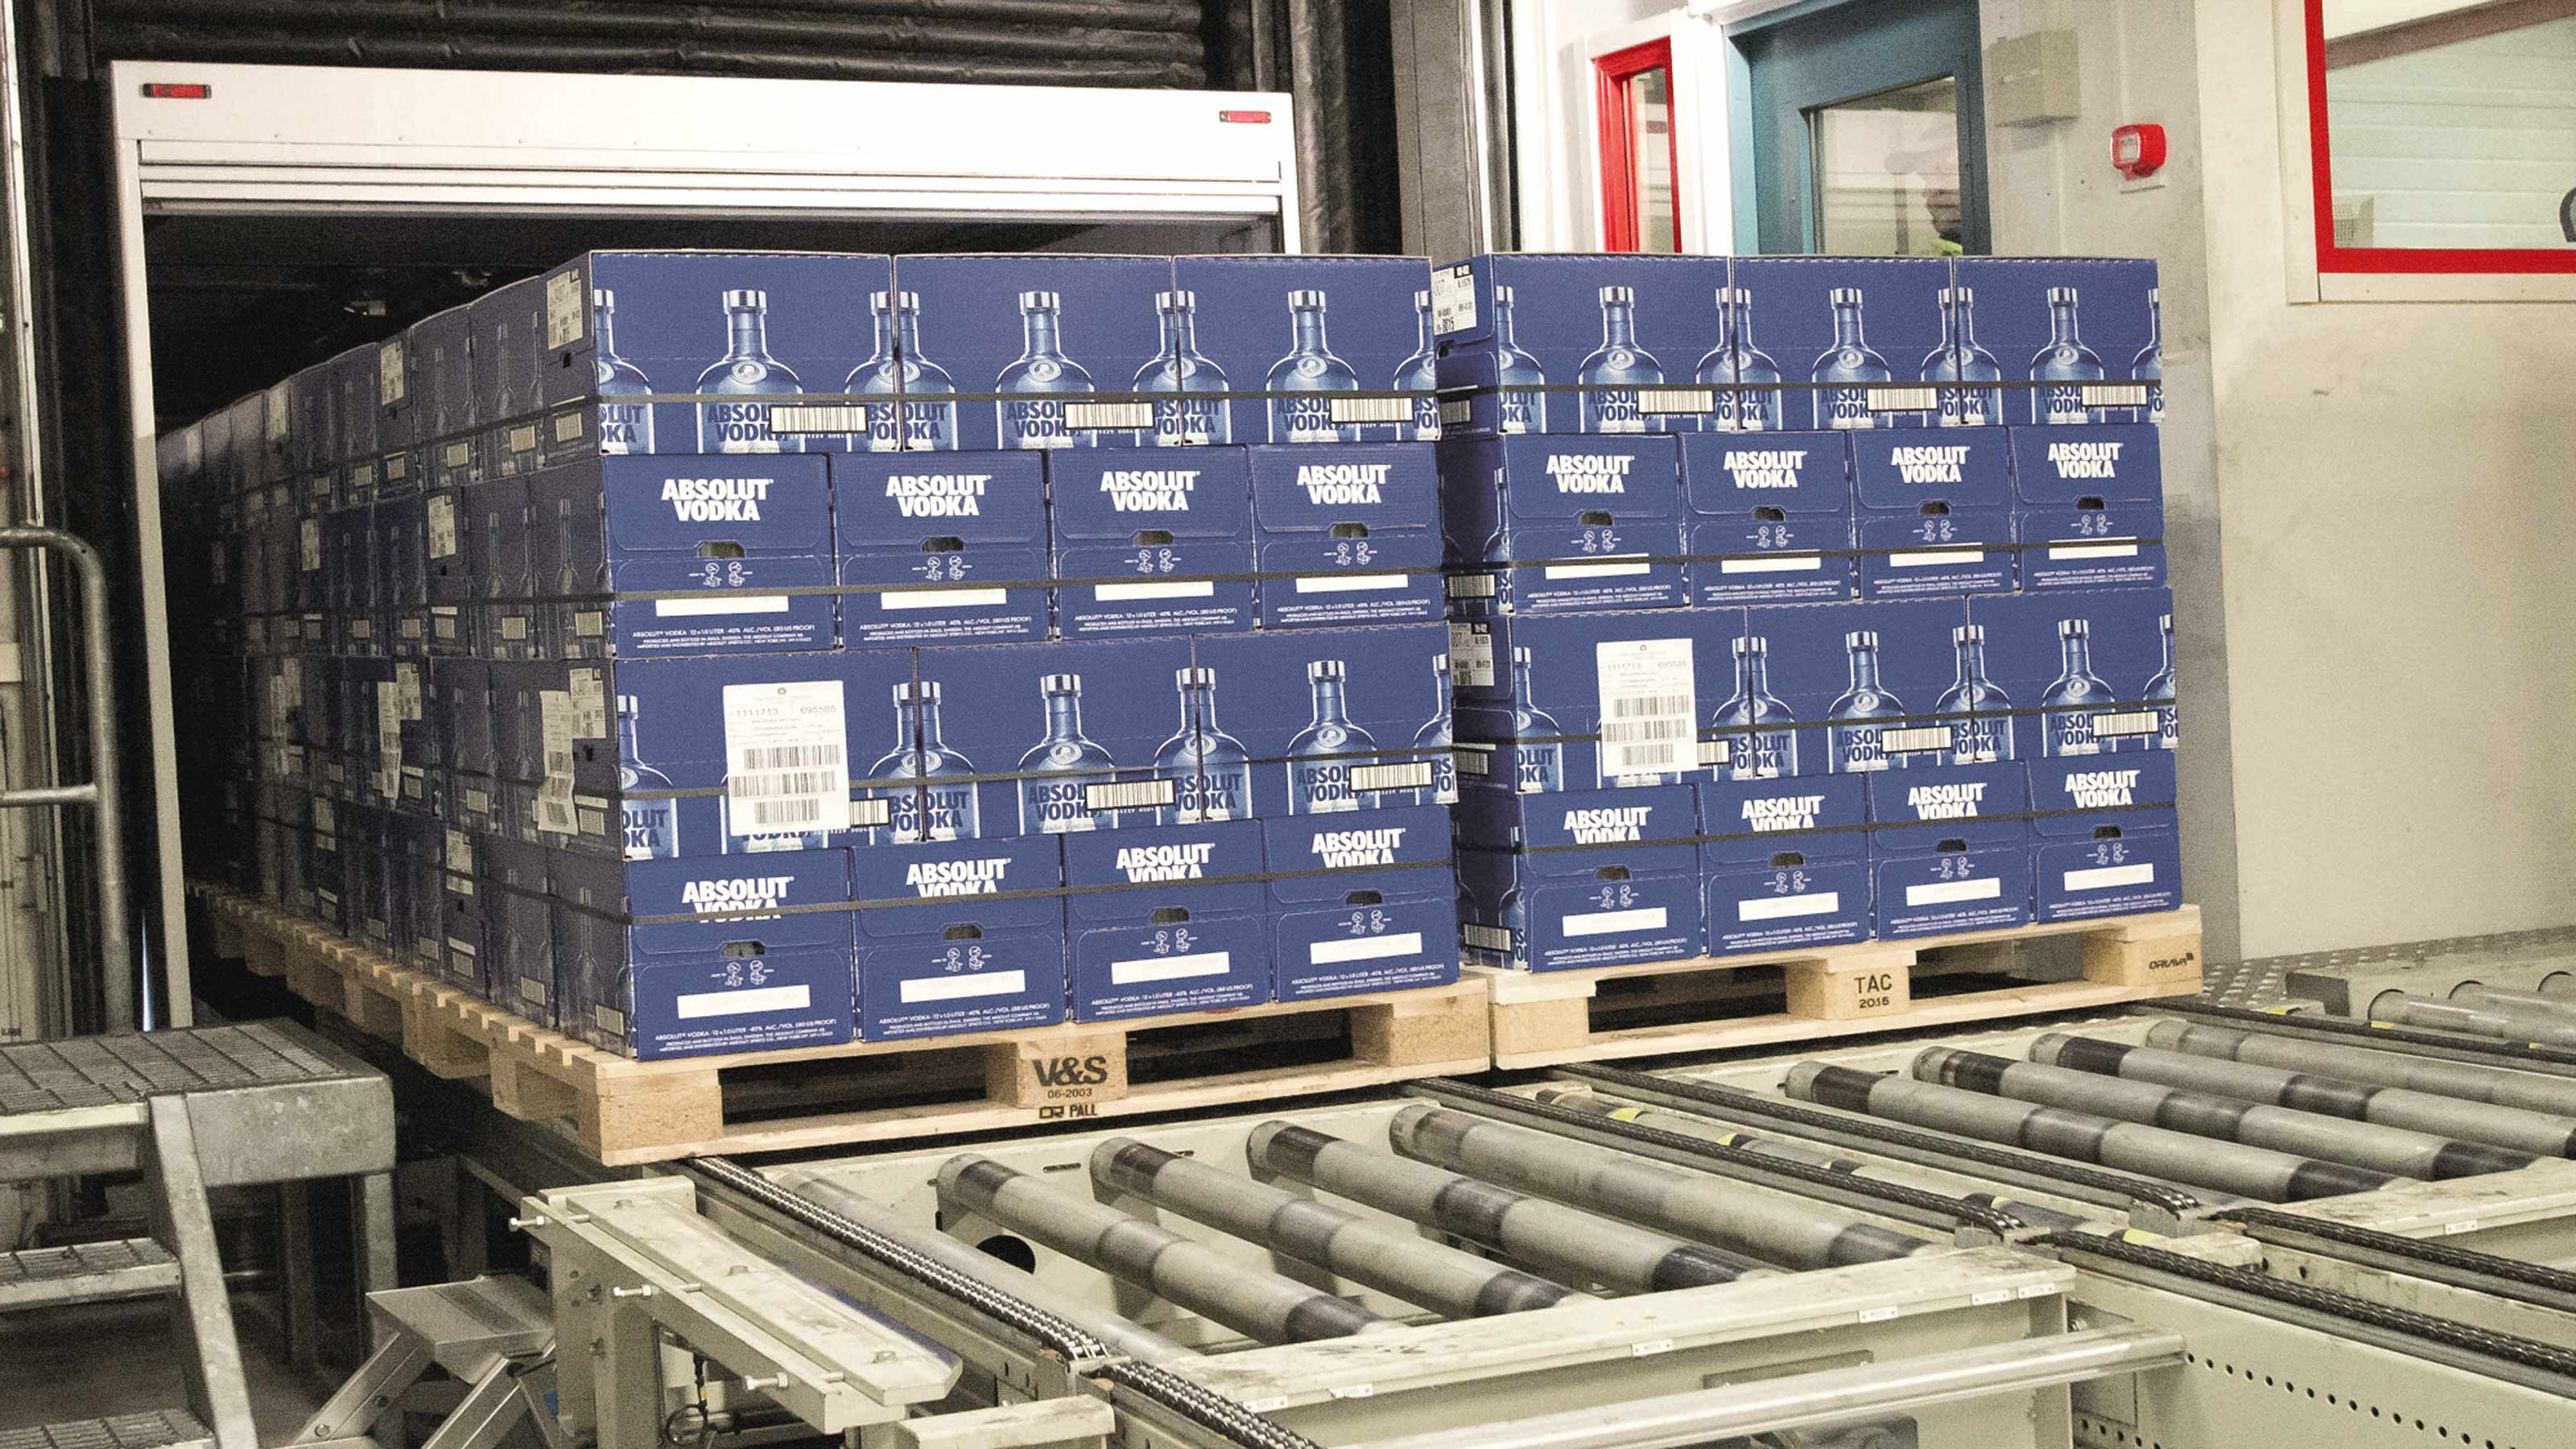 The Absolut Company Scalable Distribution Center